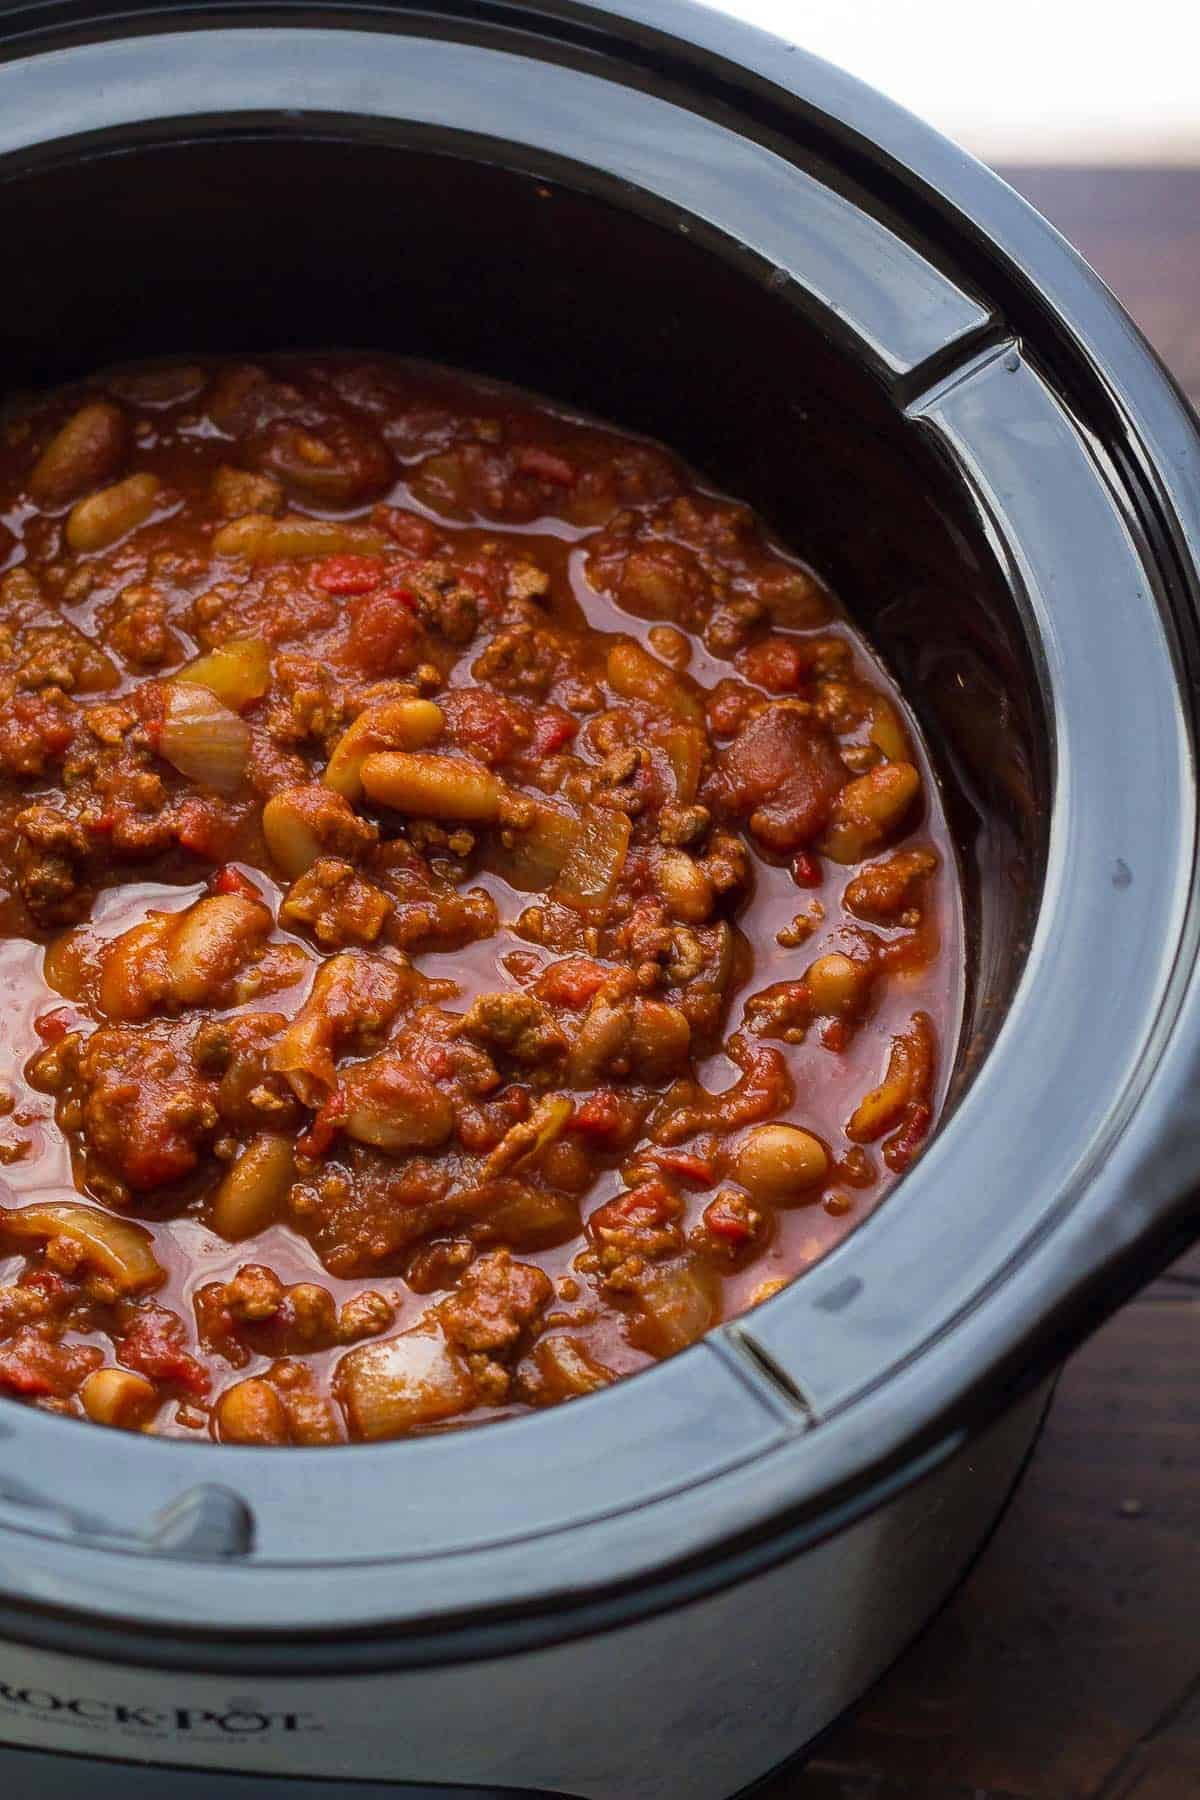 This hearty slow cooker chili gets a flavor boost from roasted red peppers, smoked paprika and a splash of balsamic vinegar. It's easy, hearty and makes for a delicious lunch or dinner!